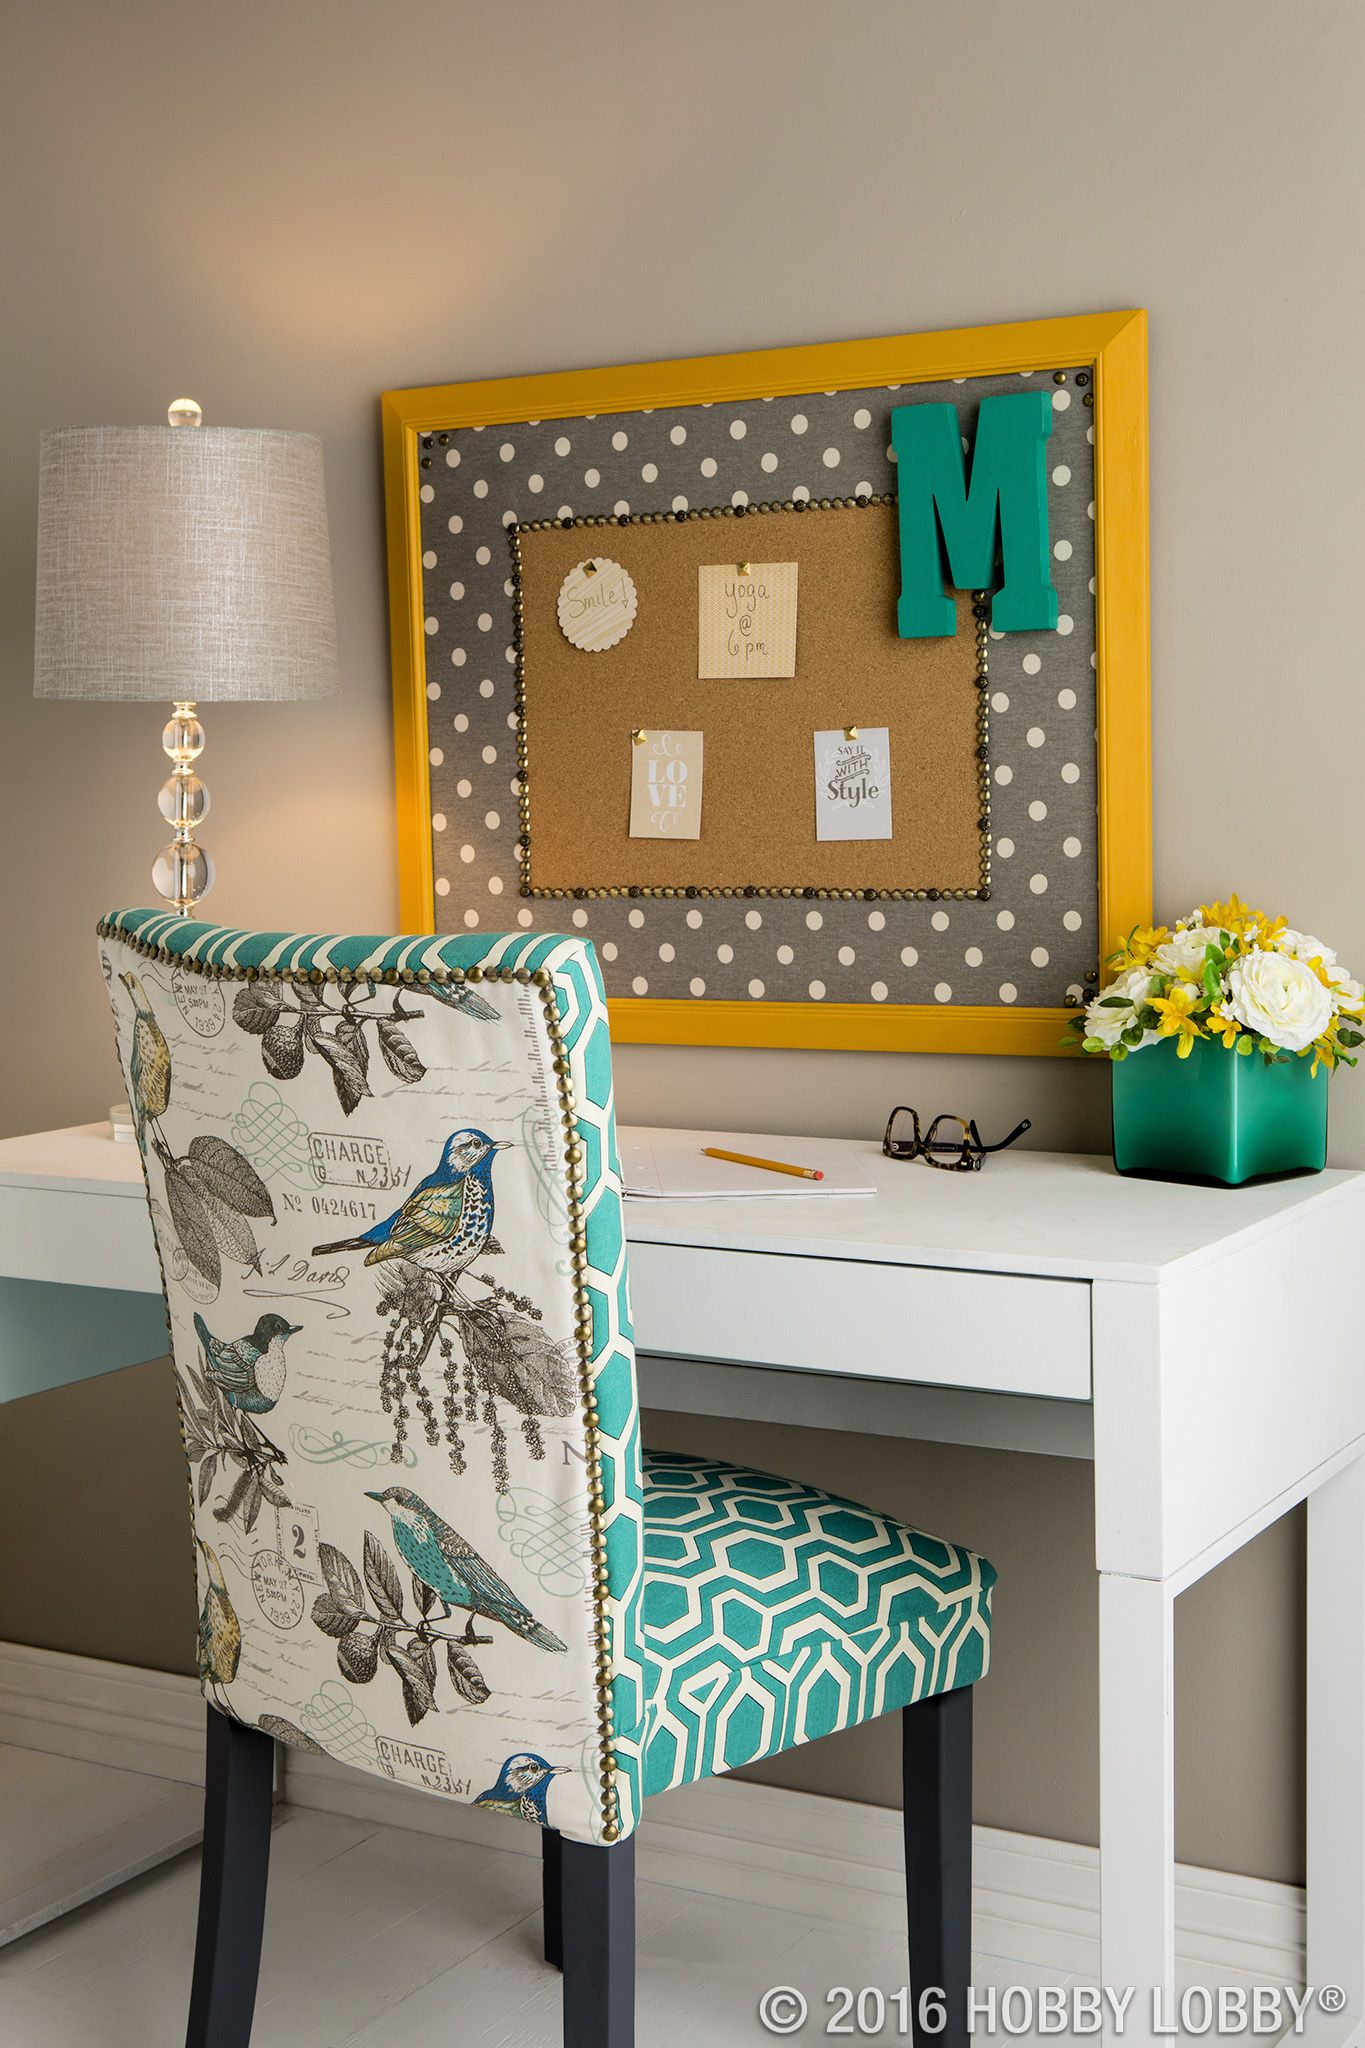 Trade An Ultra Traditional Look For Upbeat Chic Decor With Upholstery Nails  And Tacks